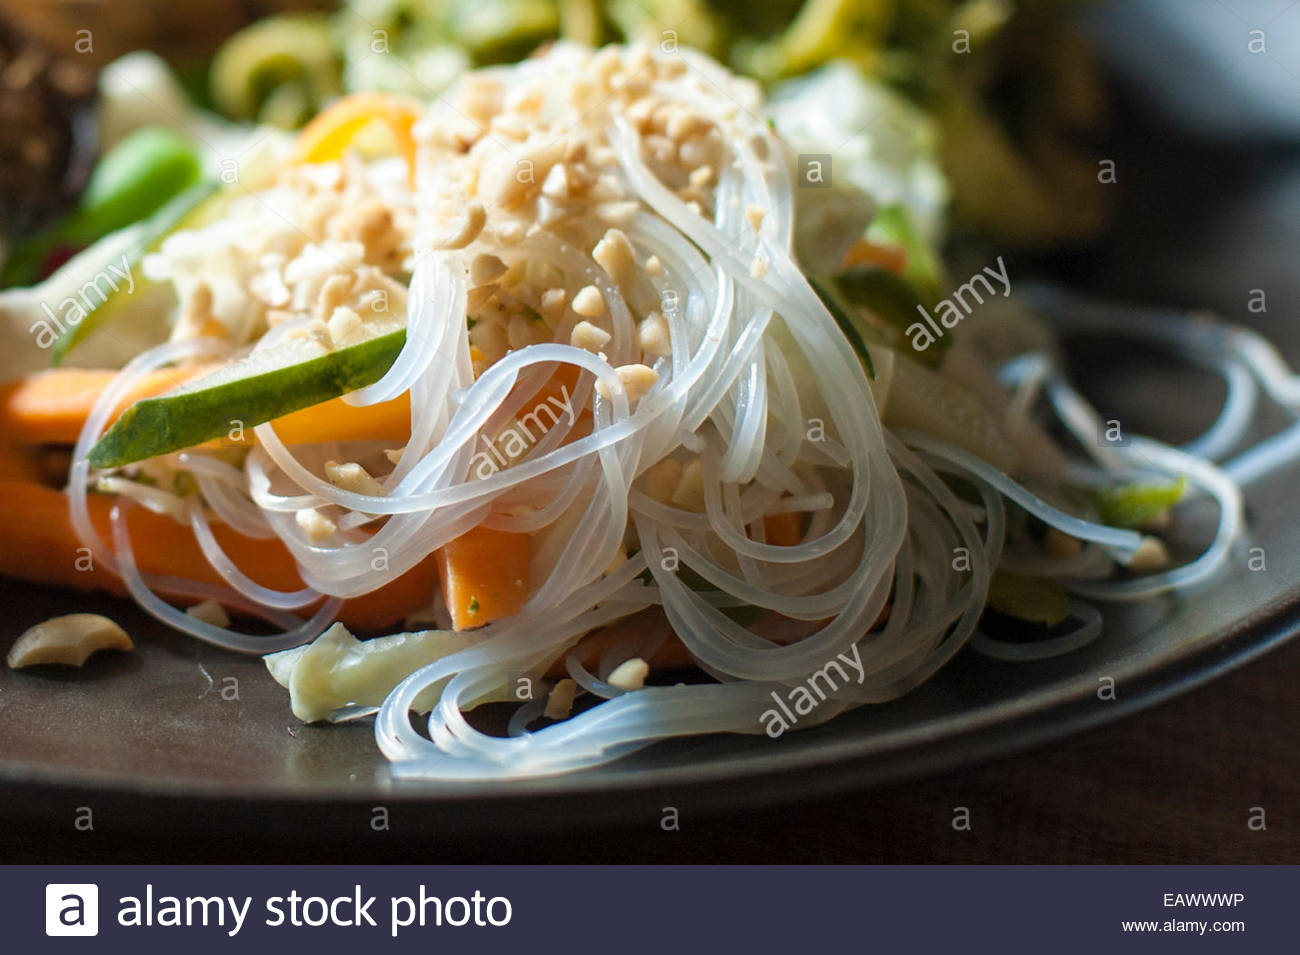 Rice noodles dish at a resort in Nepal - Stock Image